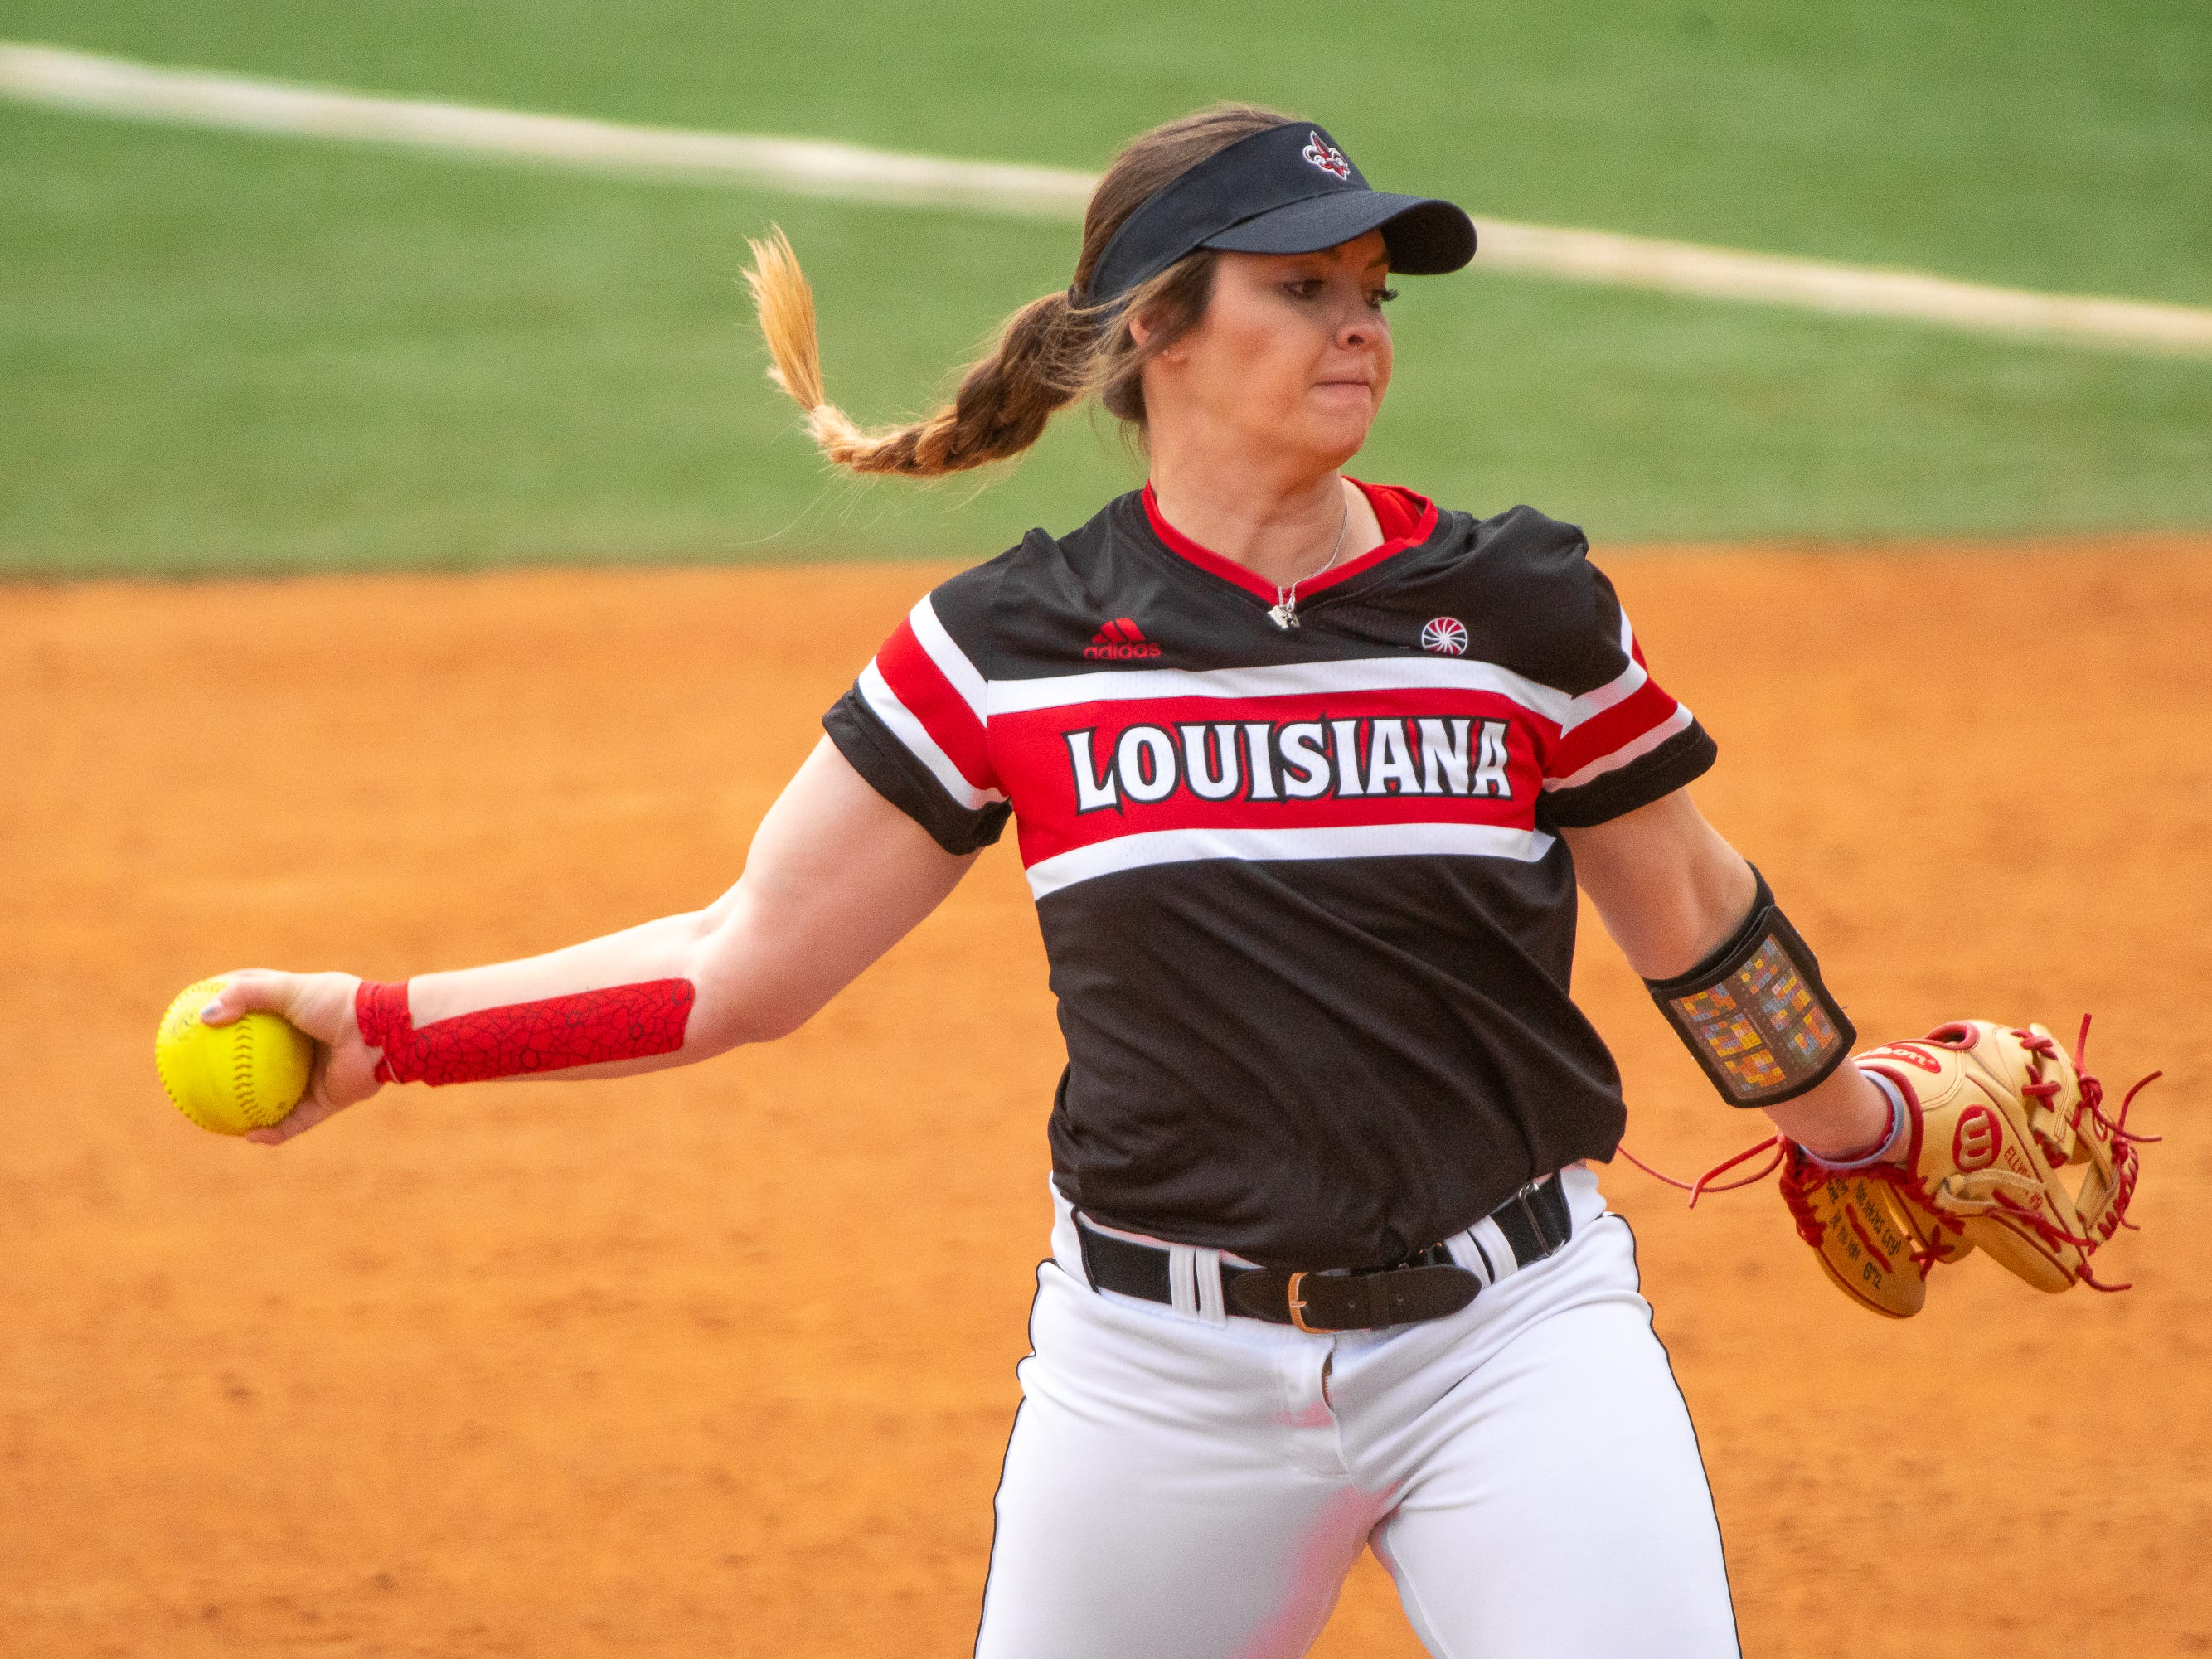 UL's pitcher Summer Ellyson throws the ball from the circle as the Ragin' Cajuns take on the Troy Trojans at Yvette Girouard Field at Lamson Park on Saturday, March 16, 2019.